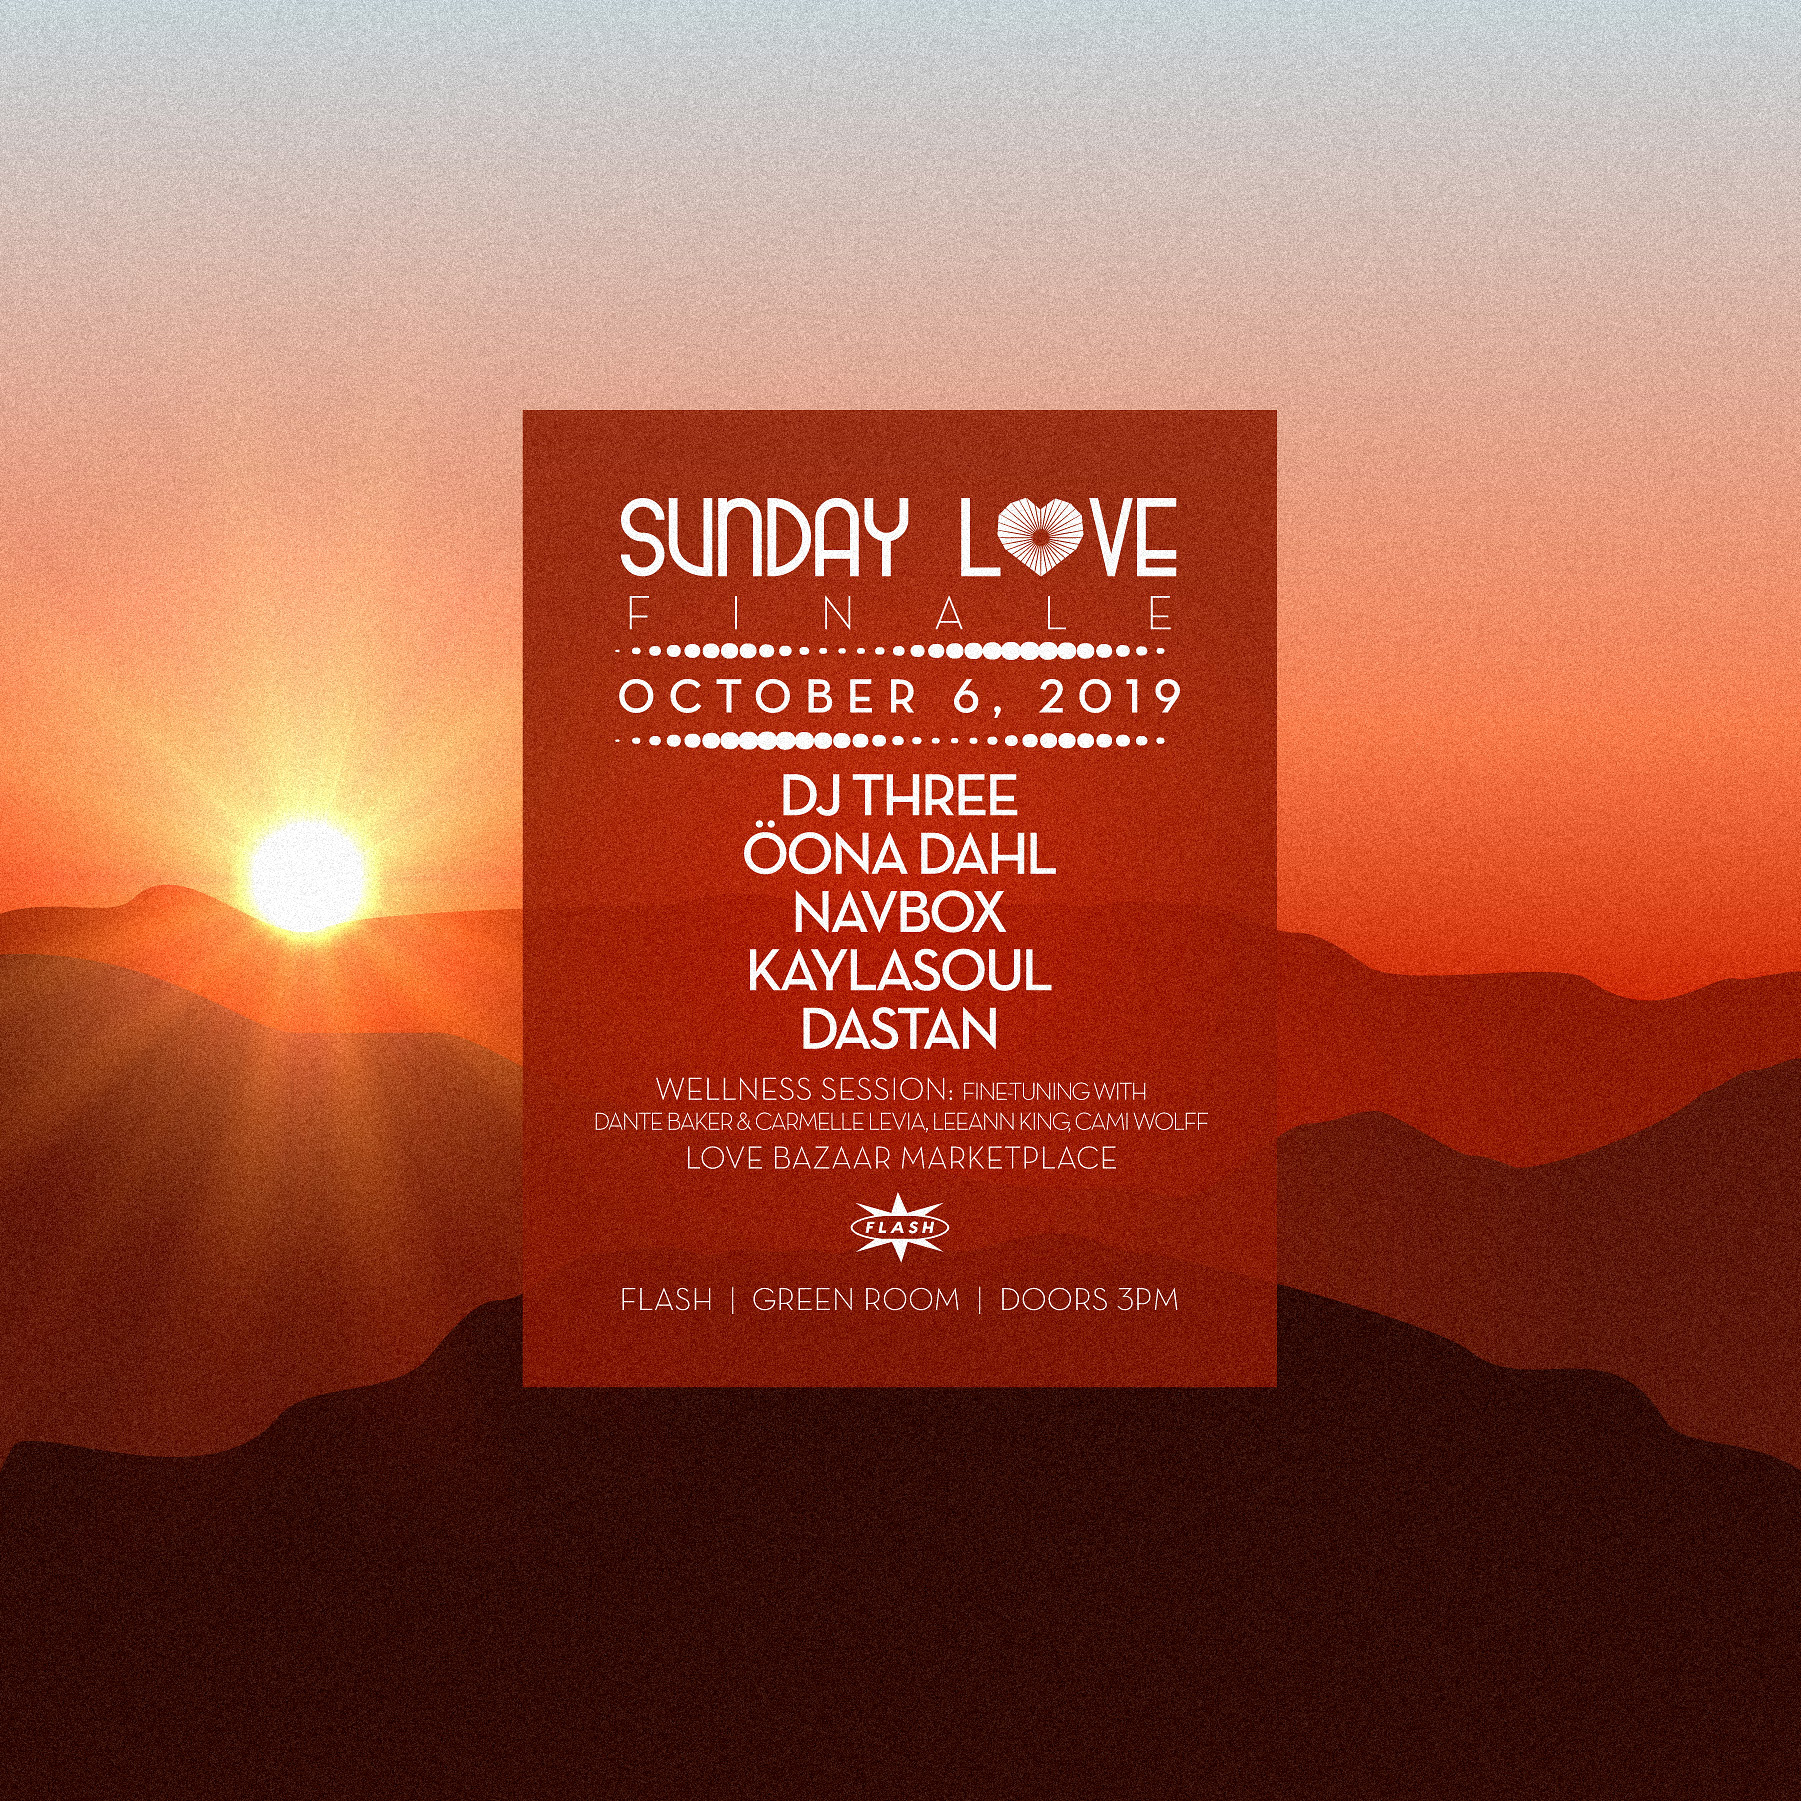 Sunday Love: The Finale:  DJ Three - Oona Dahl - Navbox event thumbnail